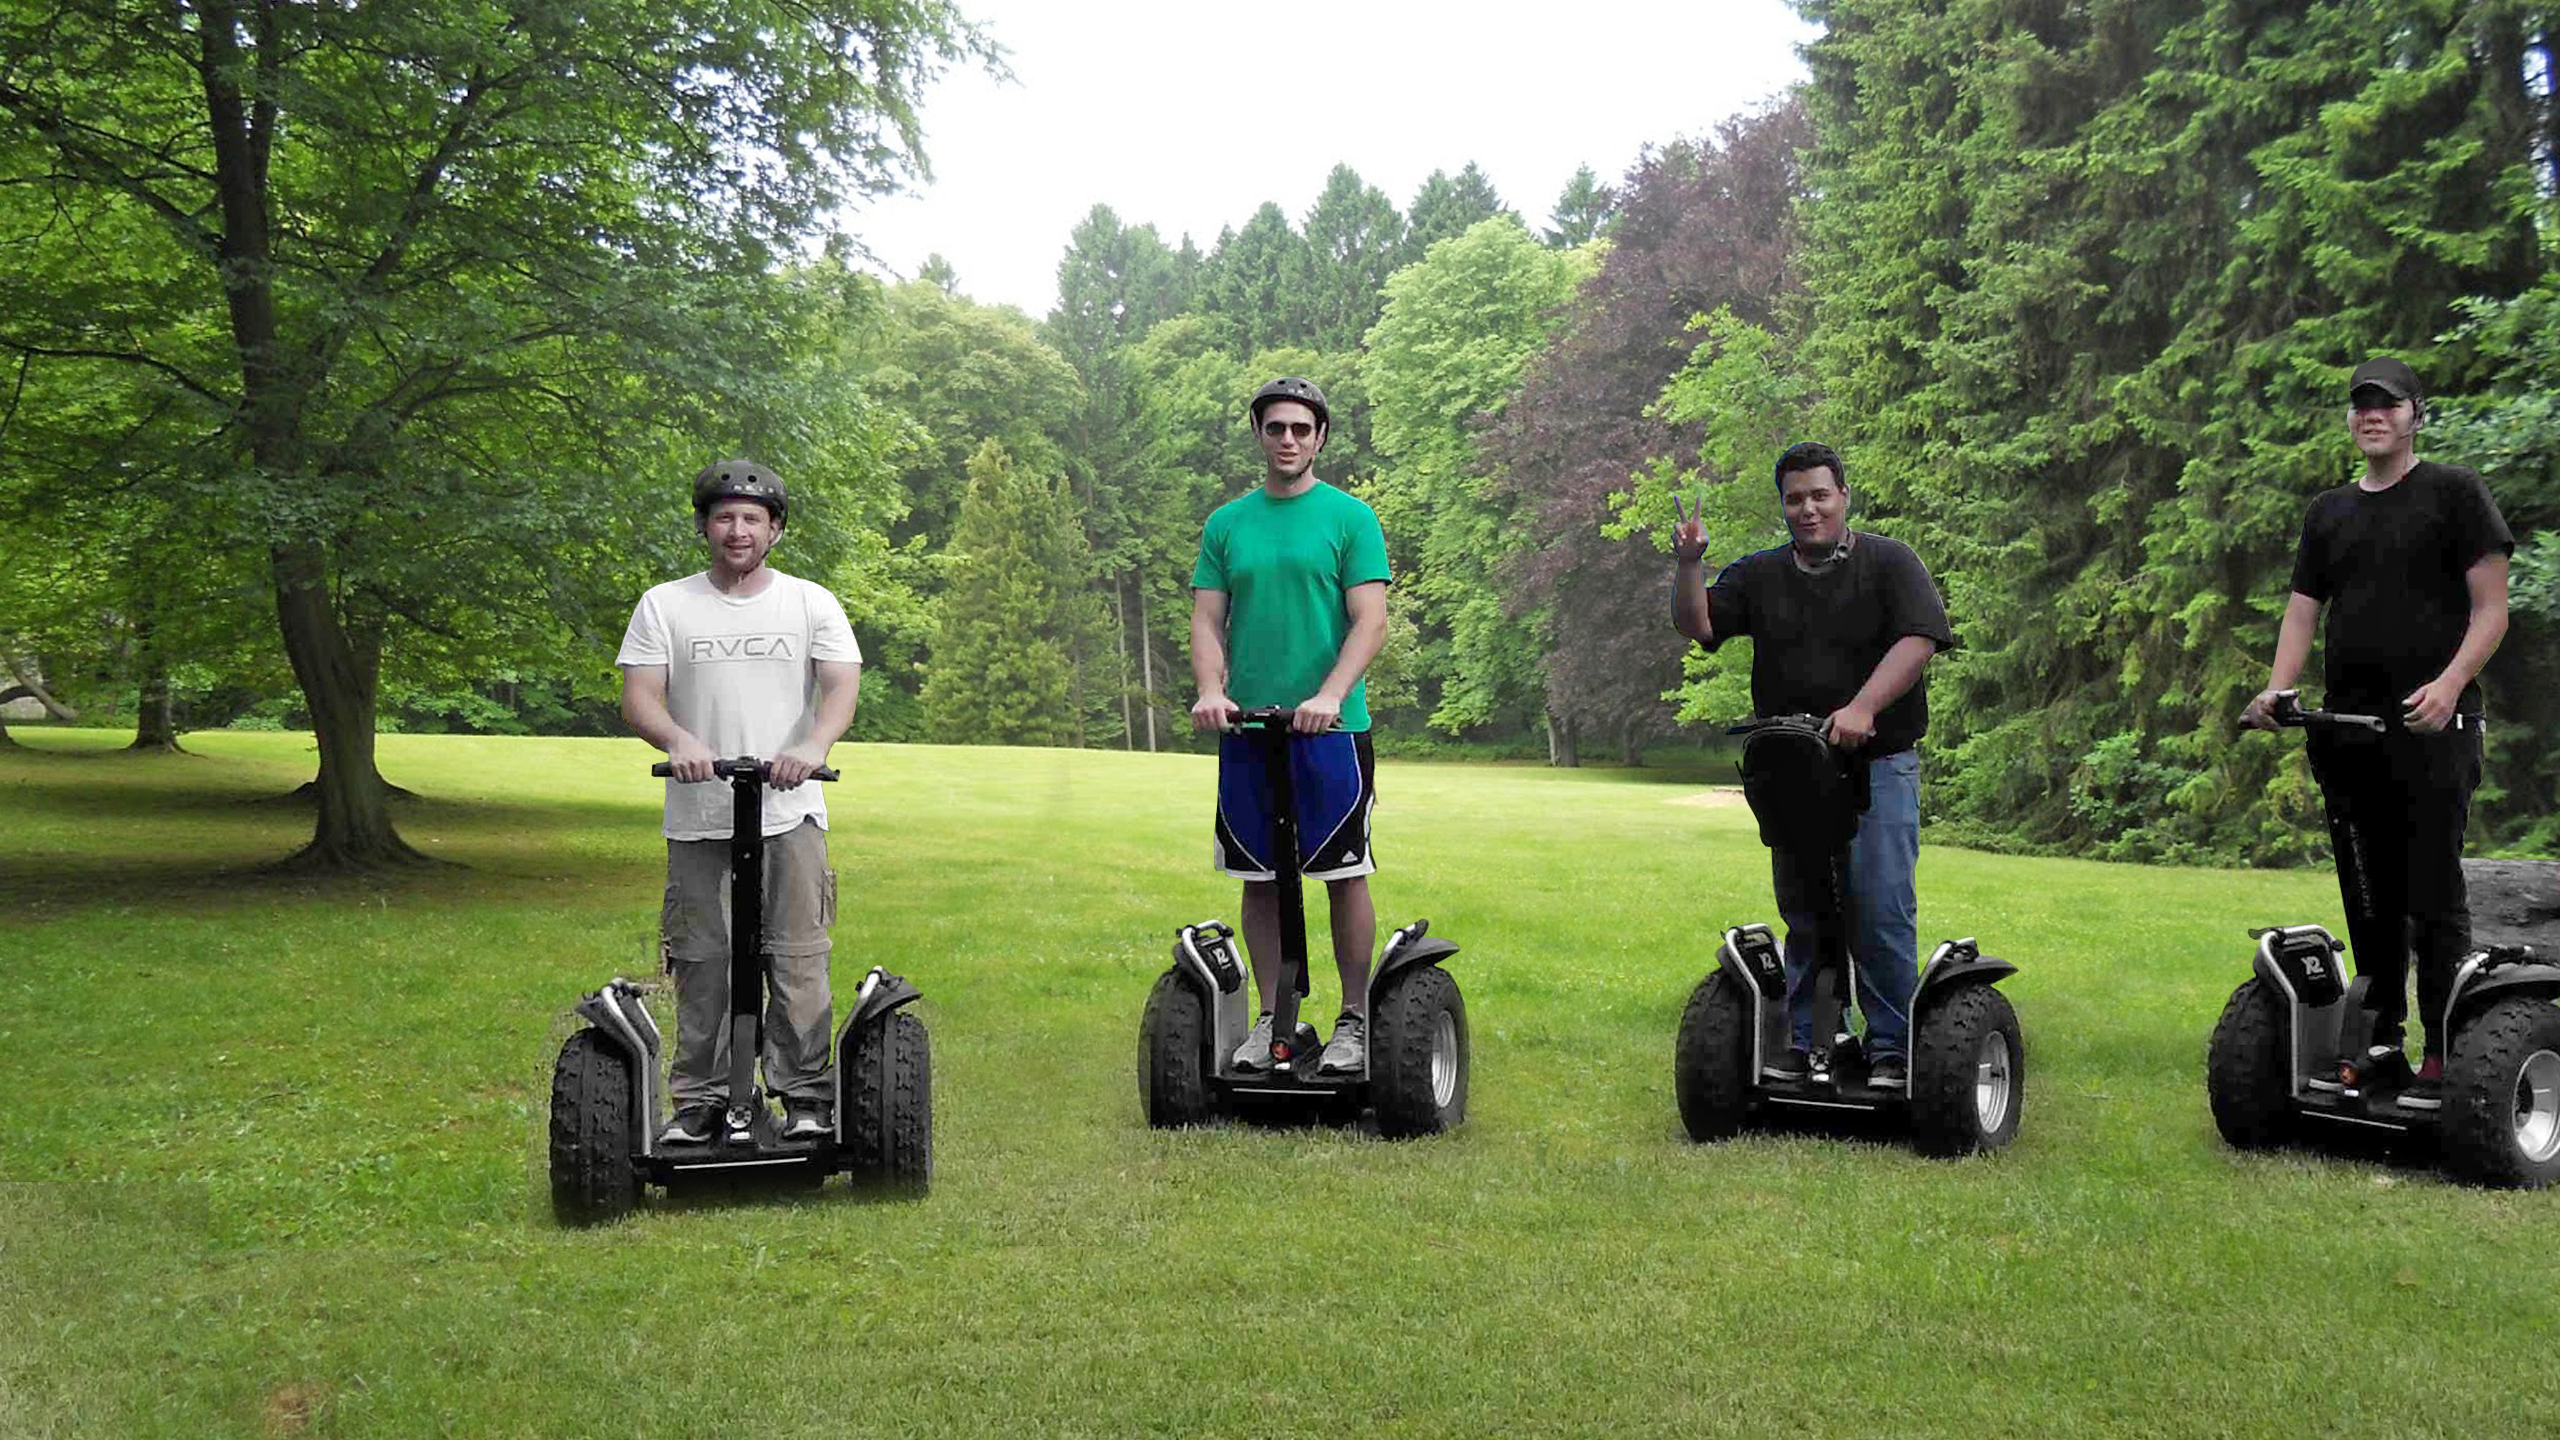 Houston guided Segway tours